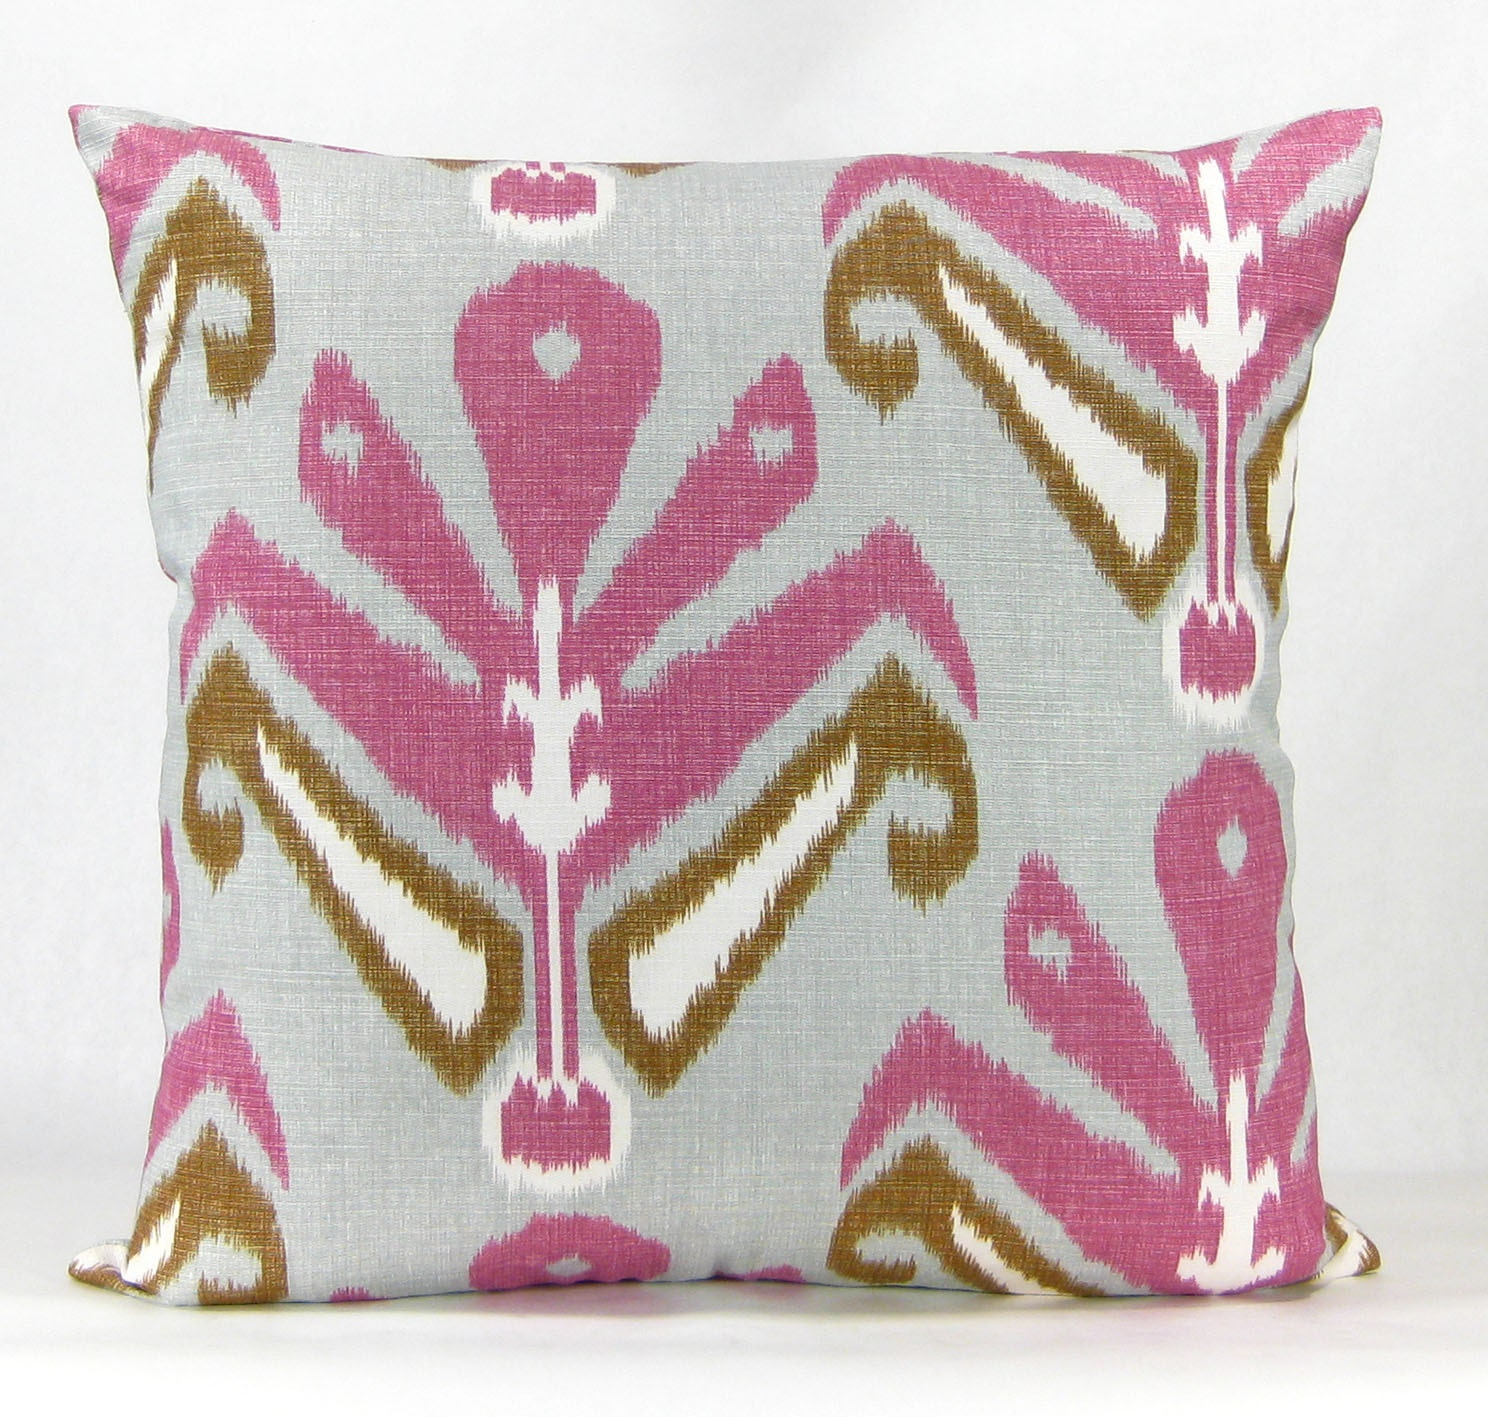 Blush Pink Decorative Pillow : John Robshaw Ikat Pillow Blush Pink Light by DecordeauxBoutique